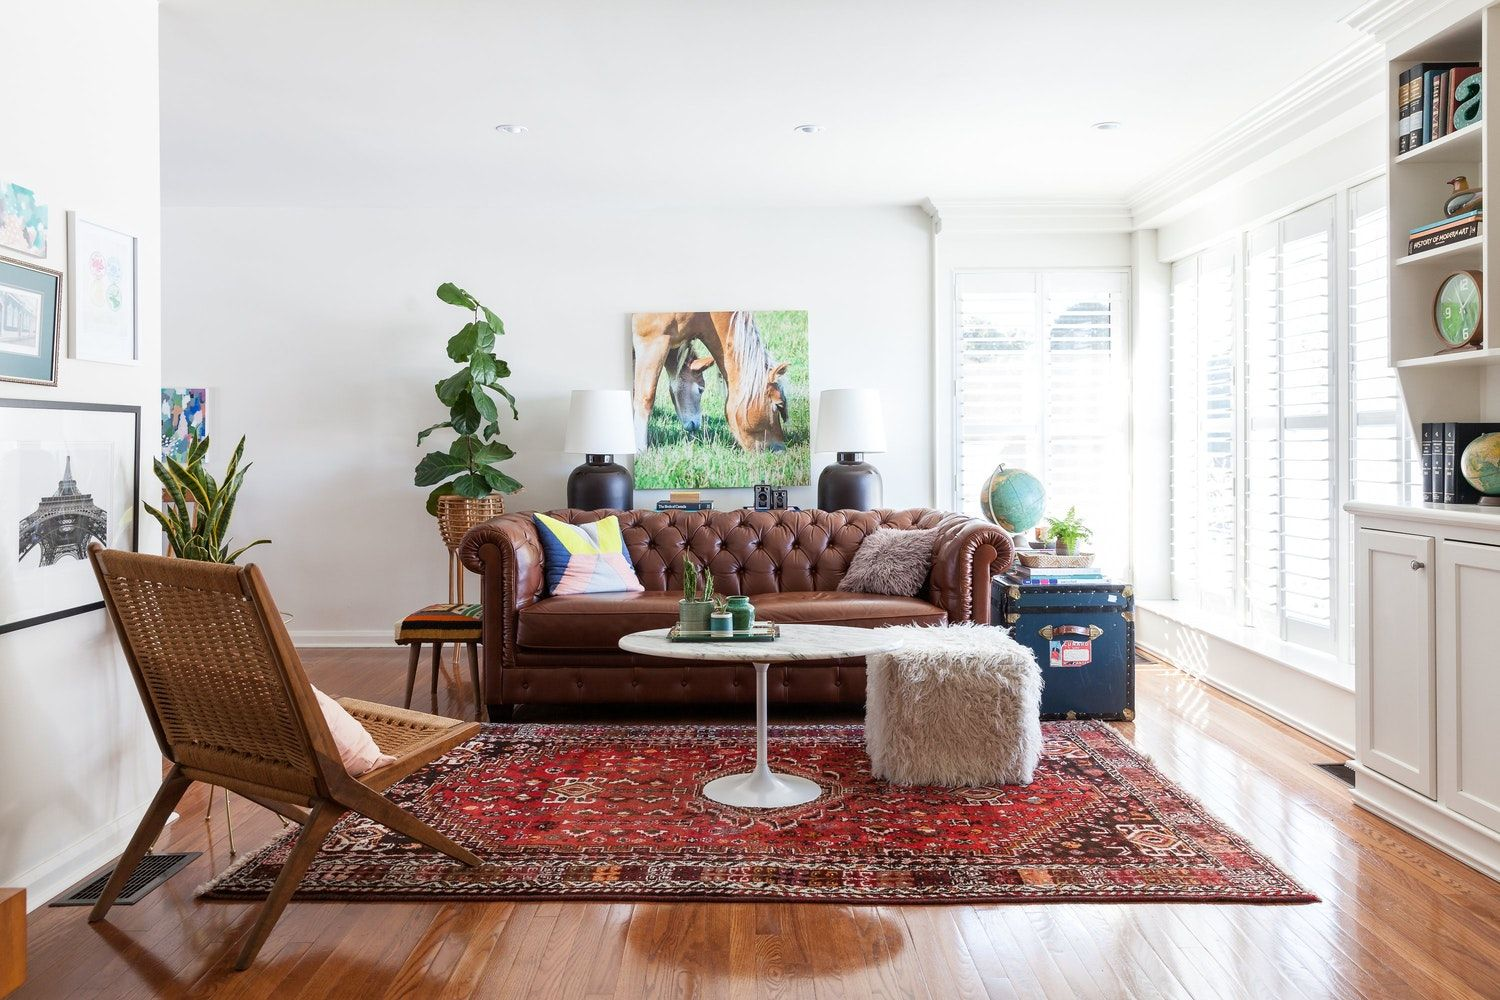 10+ Amazing Red Persian Rug Living Room